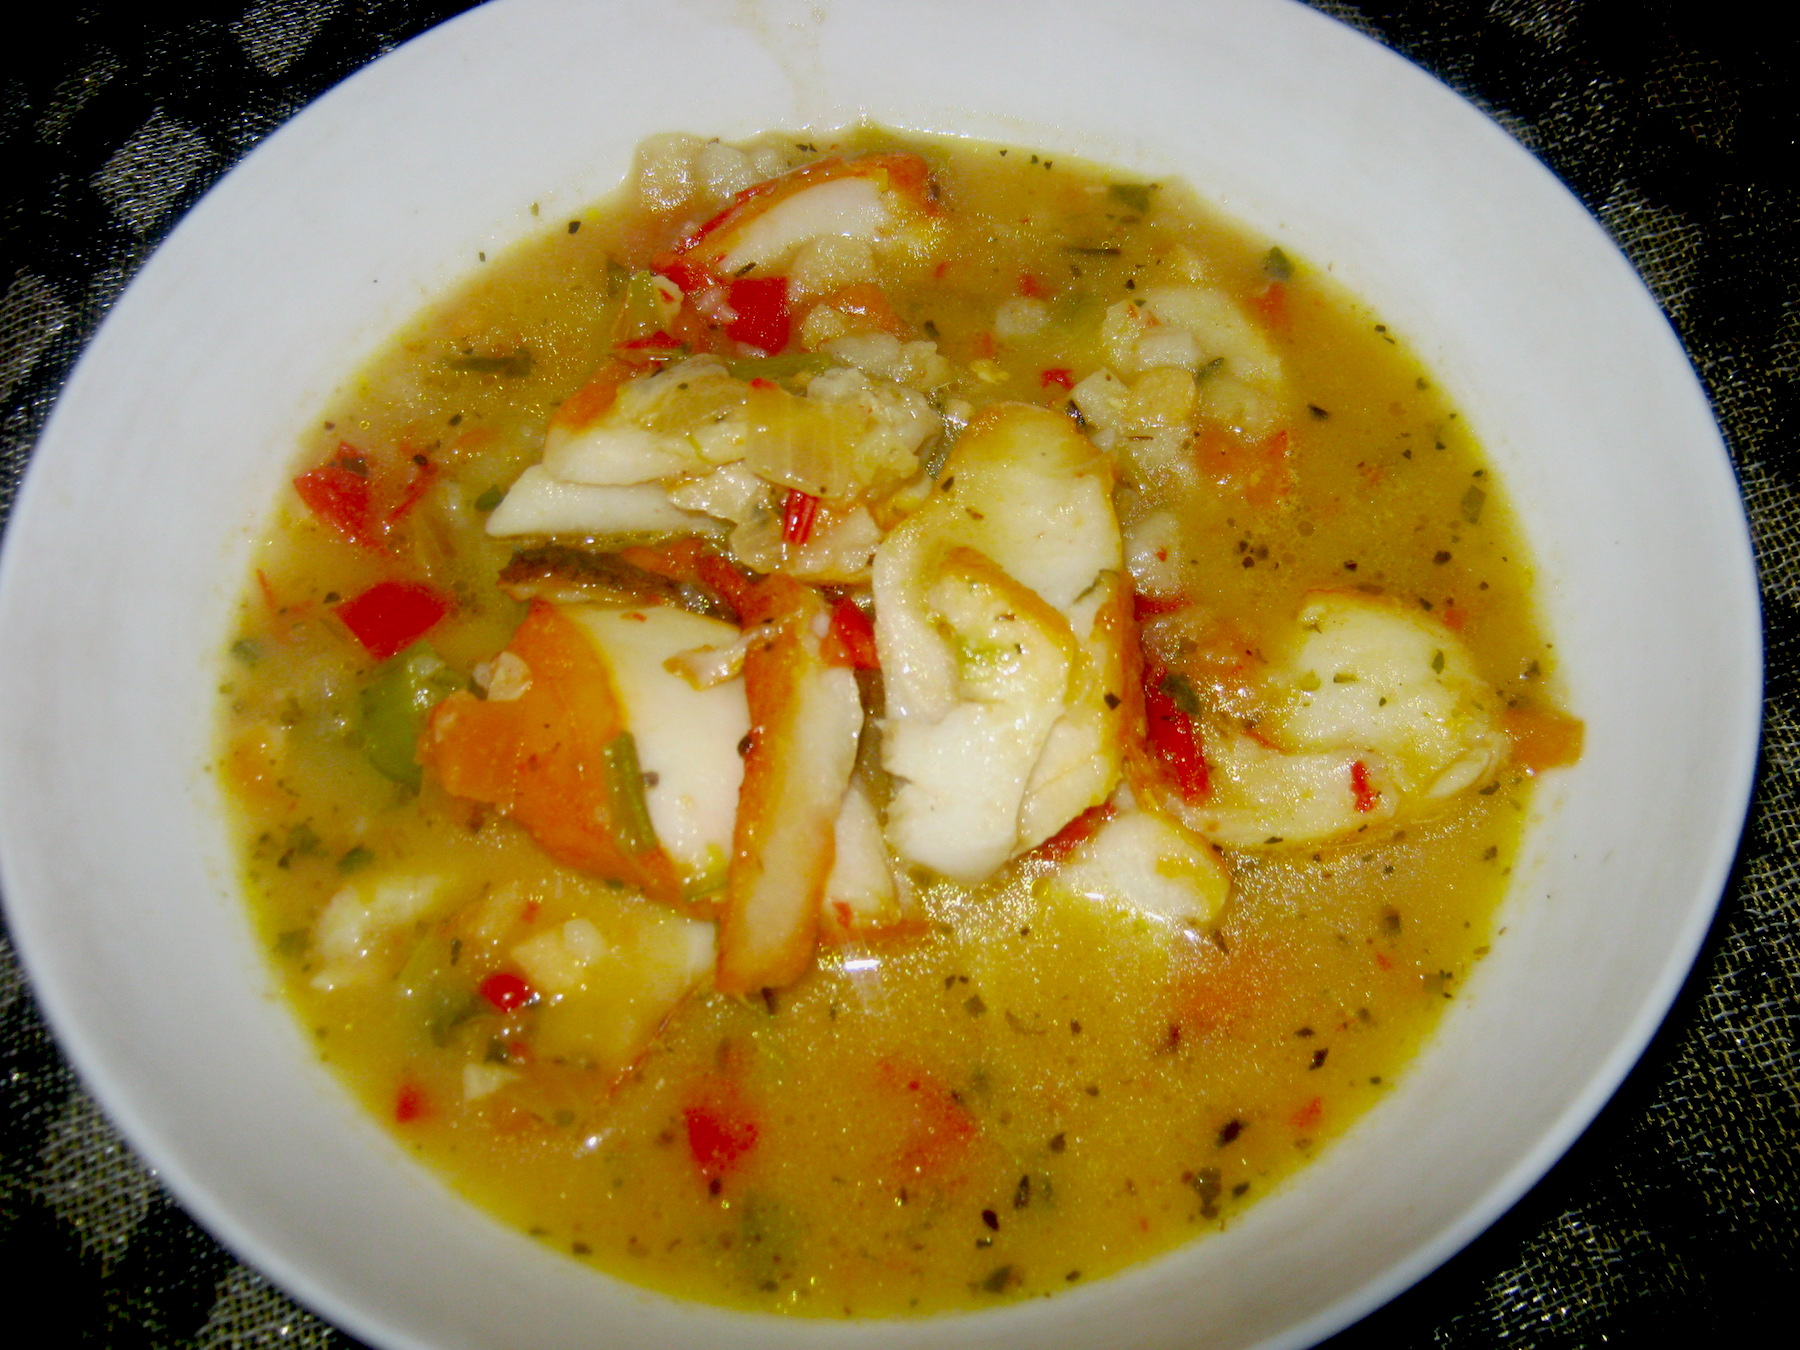 Easy Haddock soup (chowder) in a white bowl